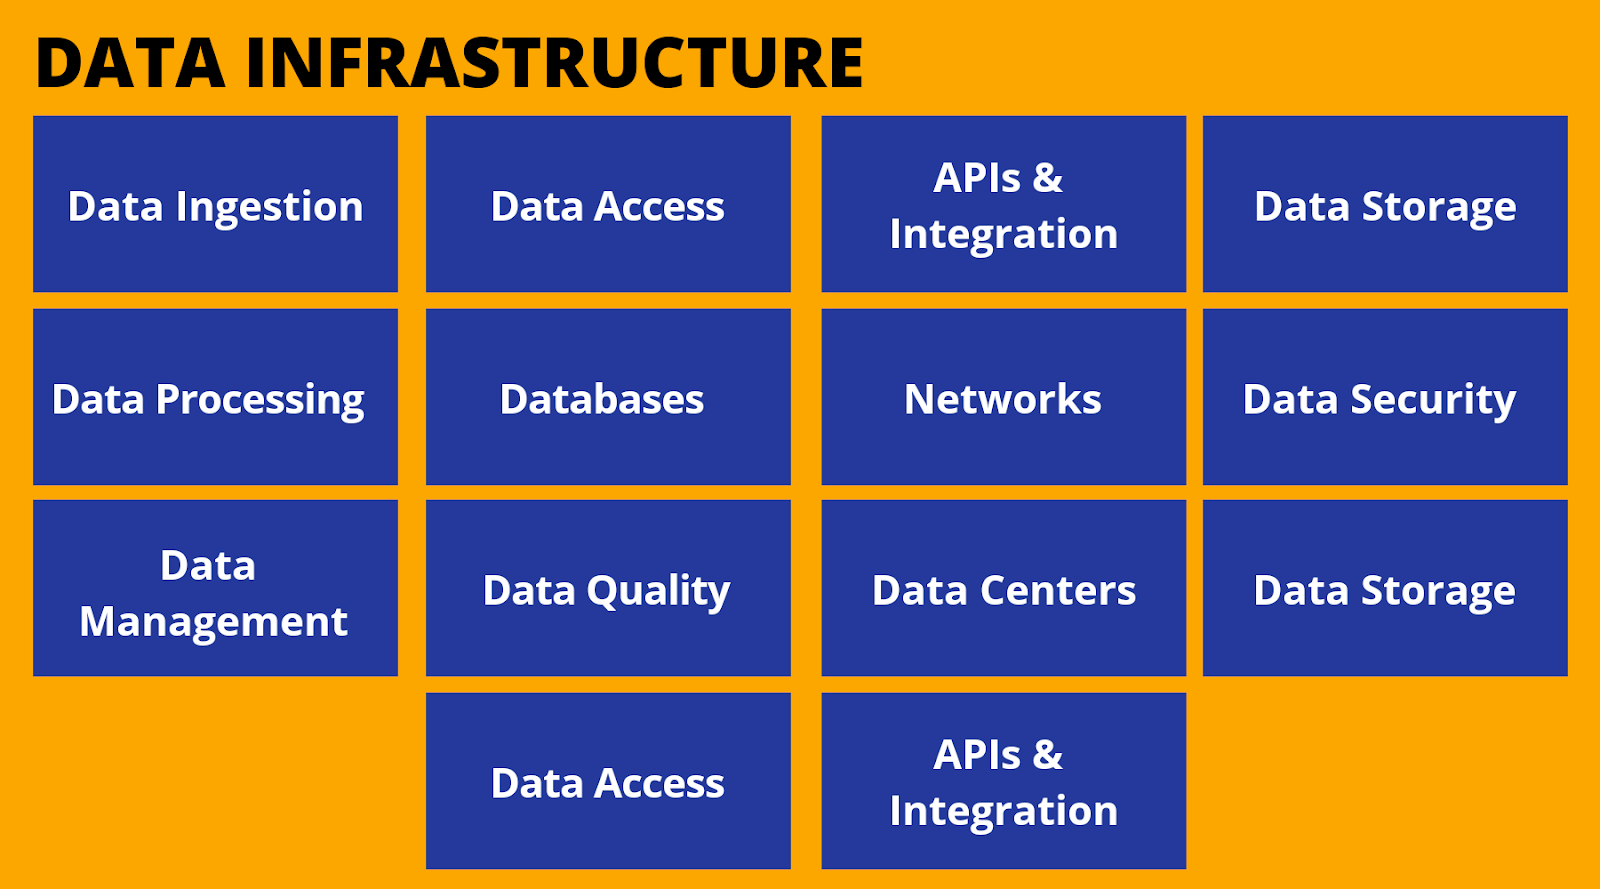 Types of Data Infrastucture